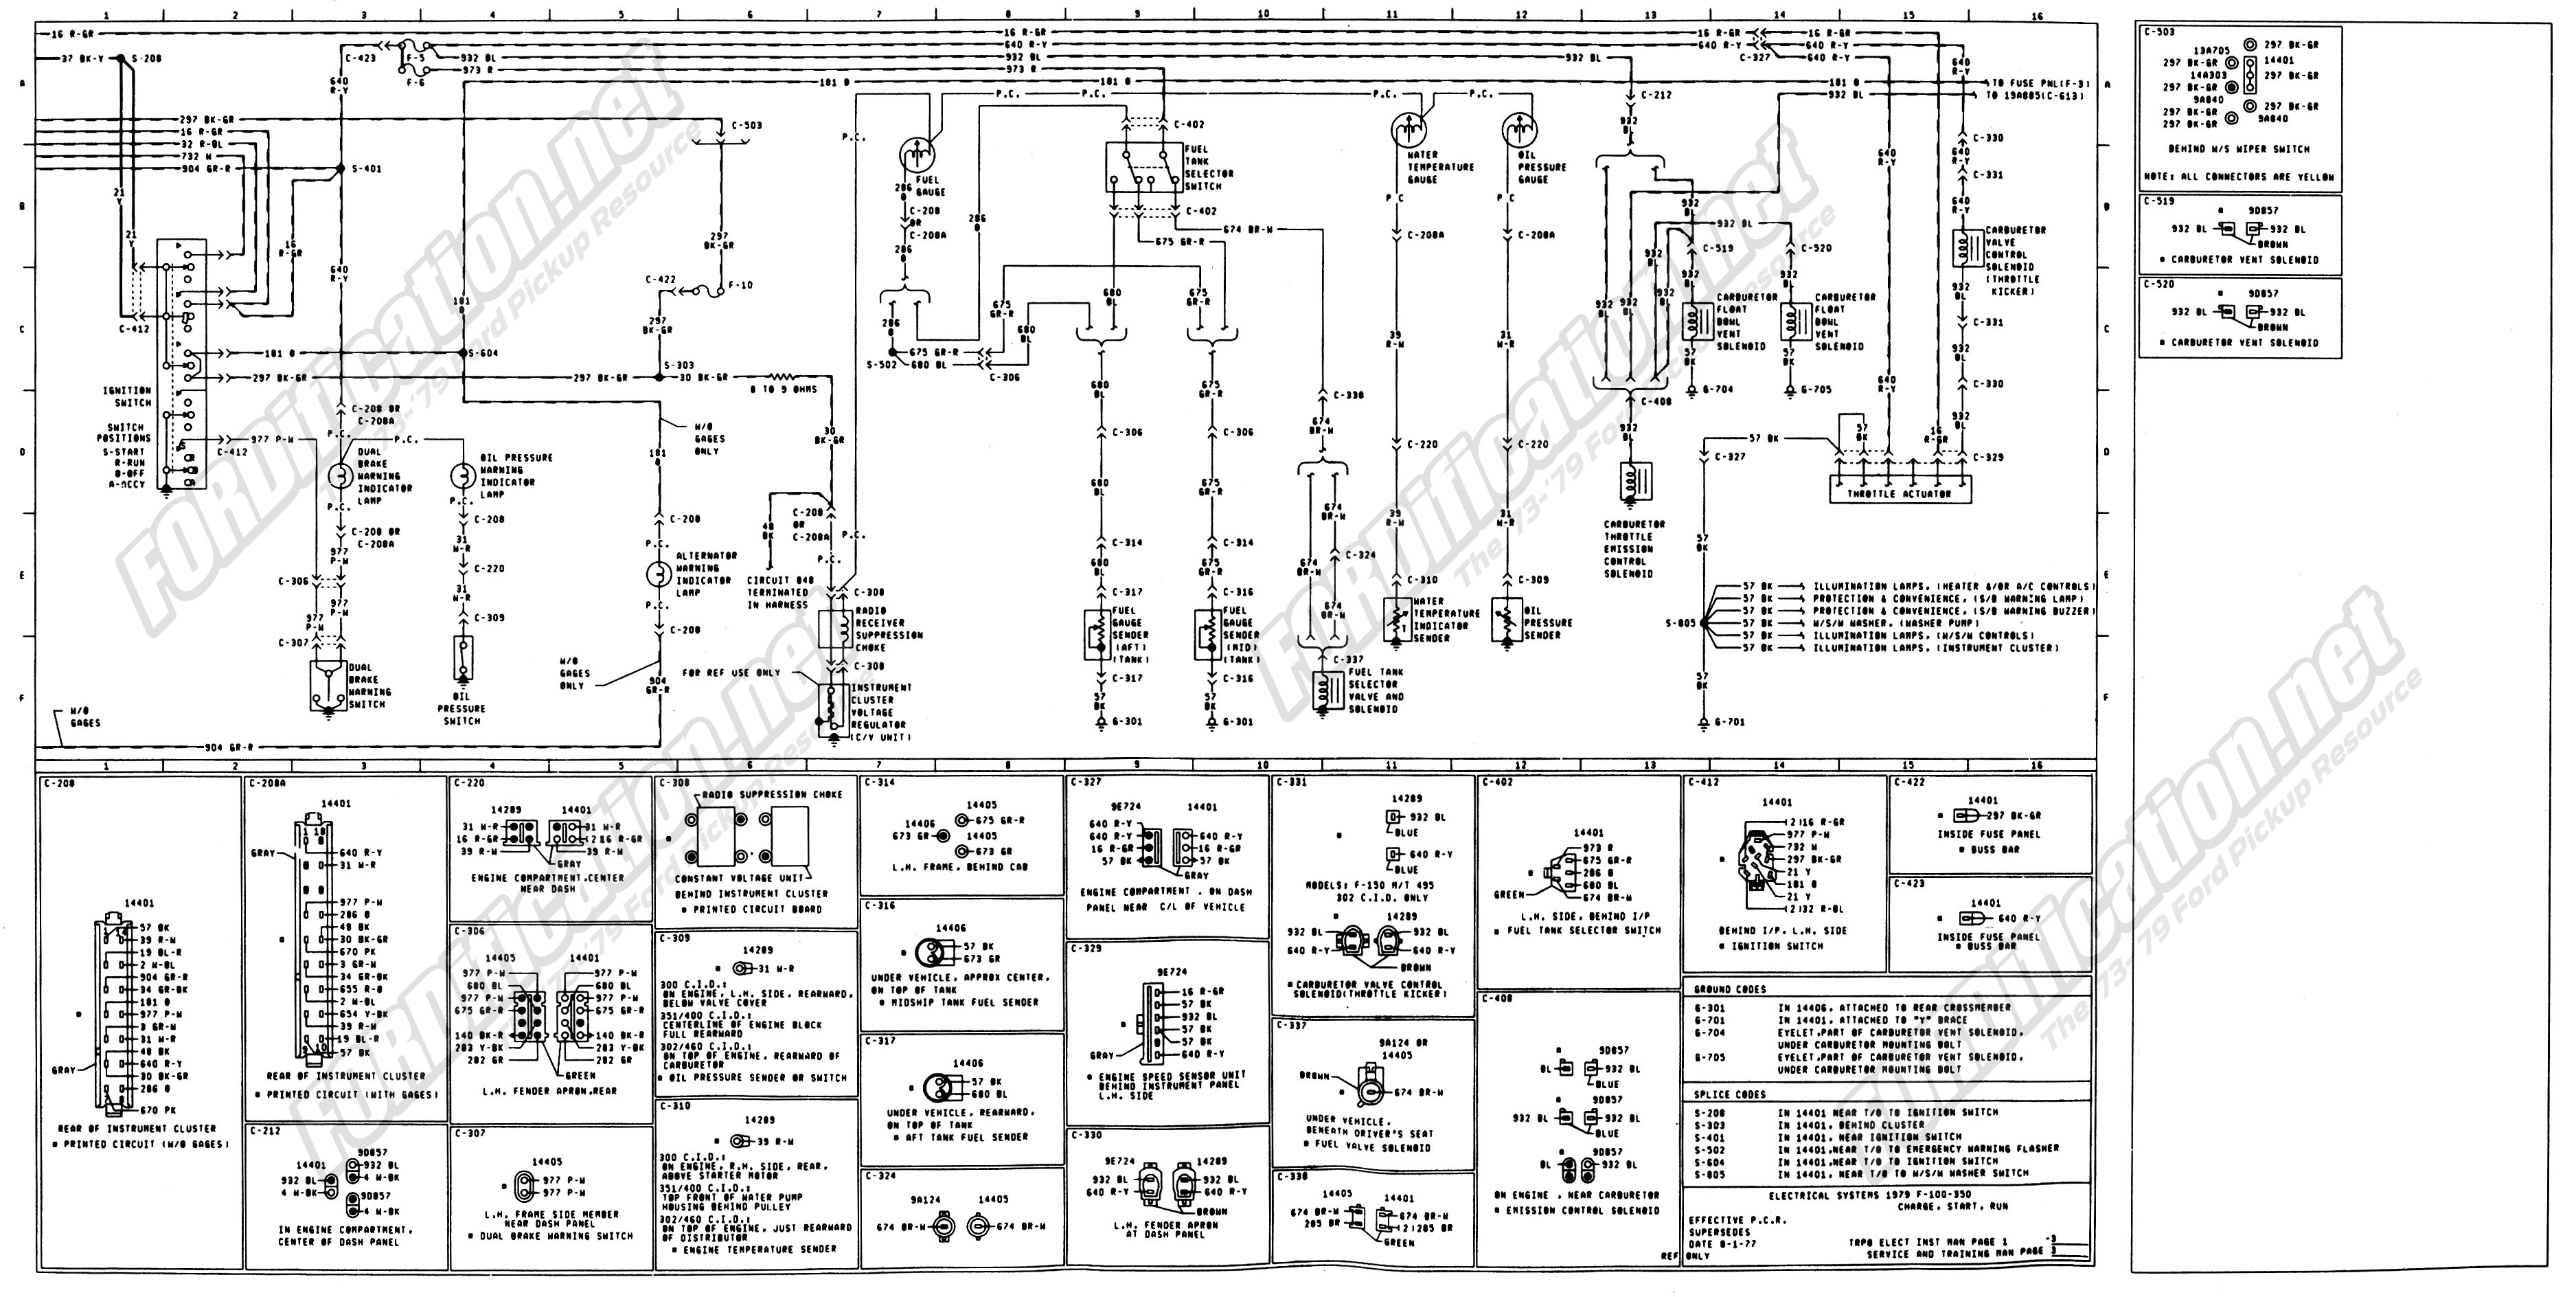 1973 1979 ford truck wiring diagrams \u0026 schematics 1979 ford f150 wiring harness 1979 f 150 wiring diagram ford truck